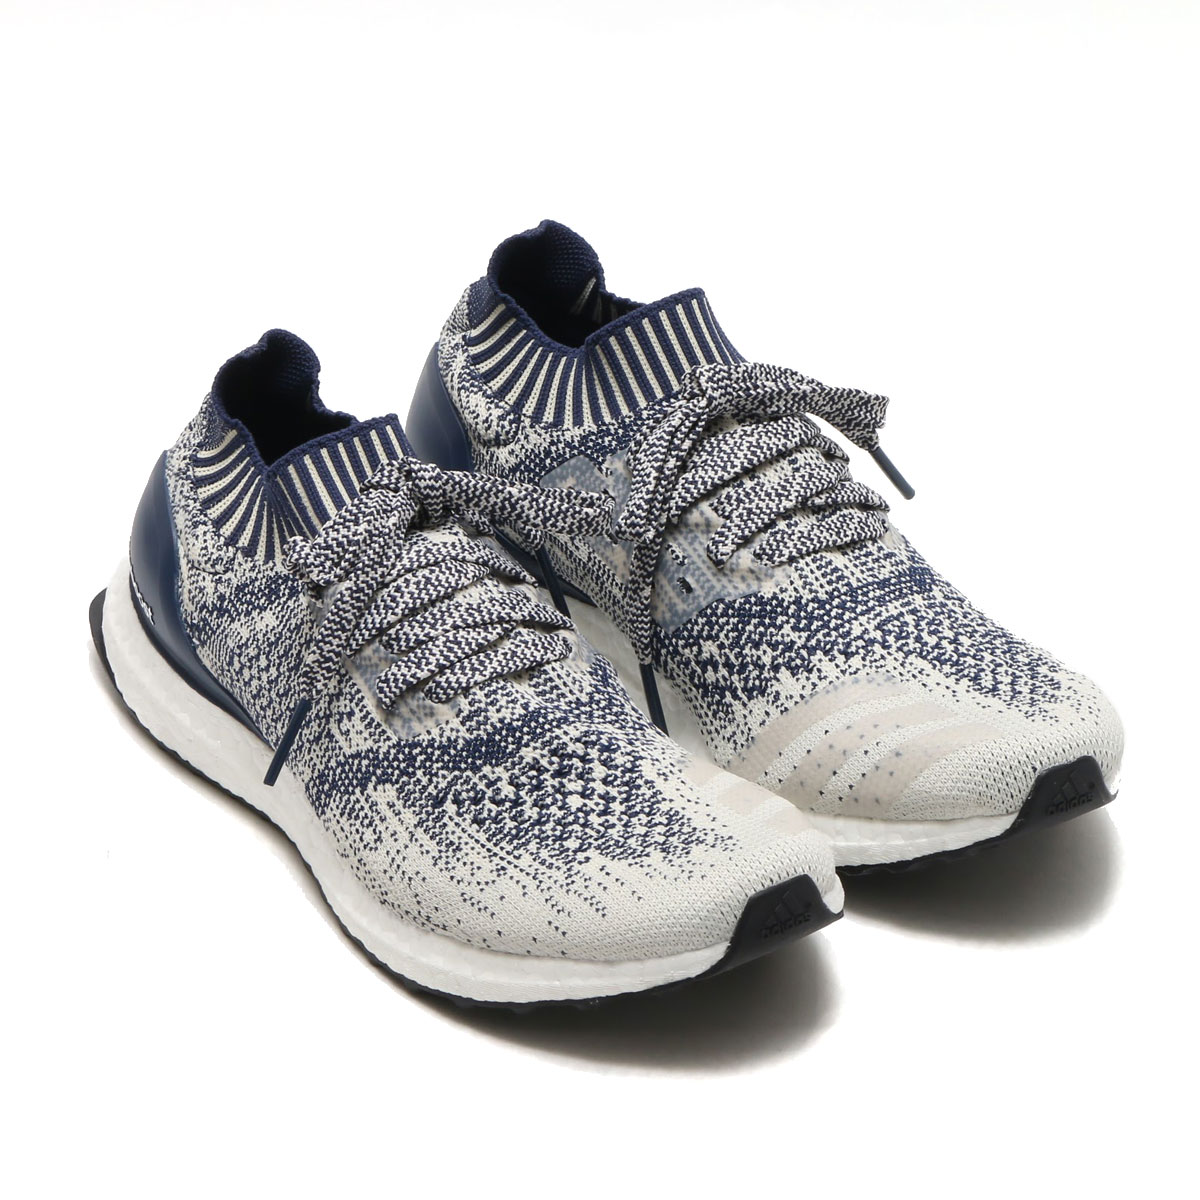 a0d9338cff5 ... adidas UltraBOOST Uncaged LTD (Adidas originals ultra boost Ann caged  LTD) (Chalk White ...